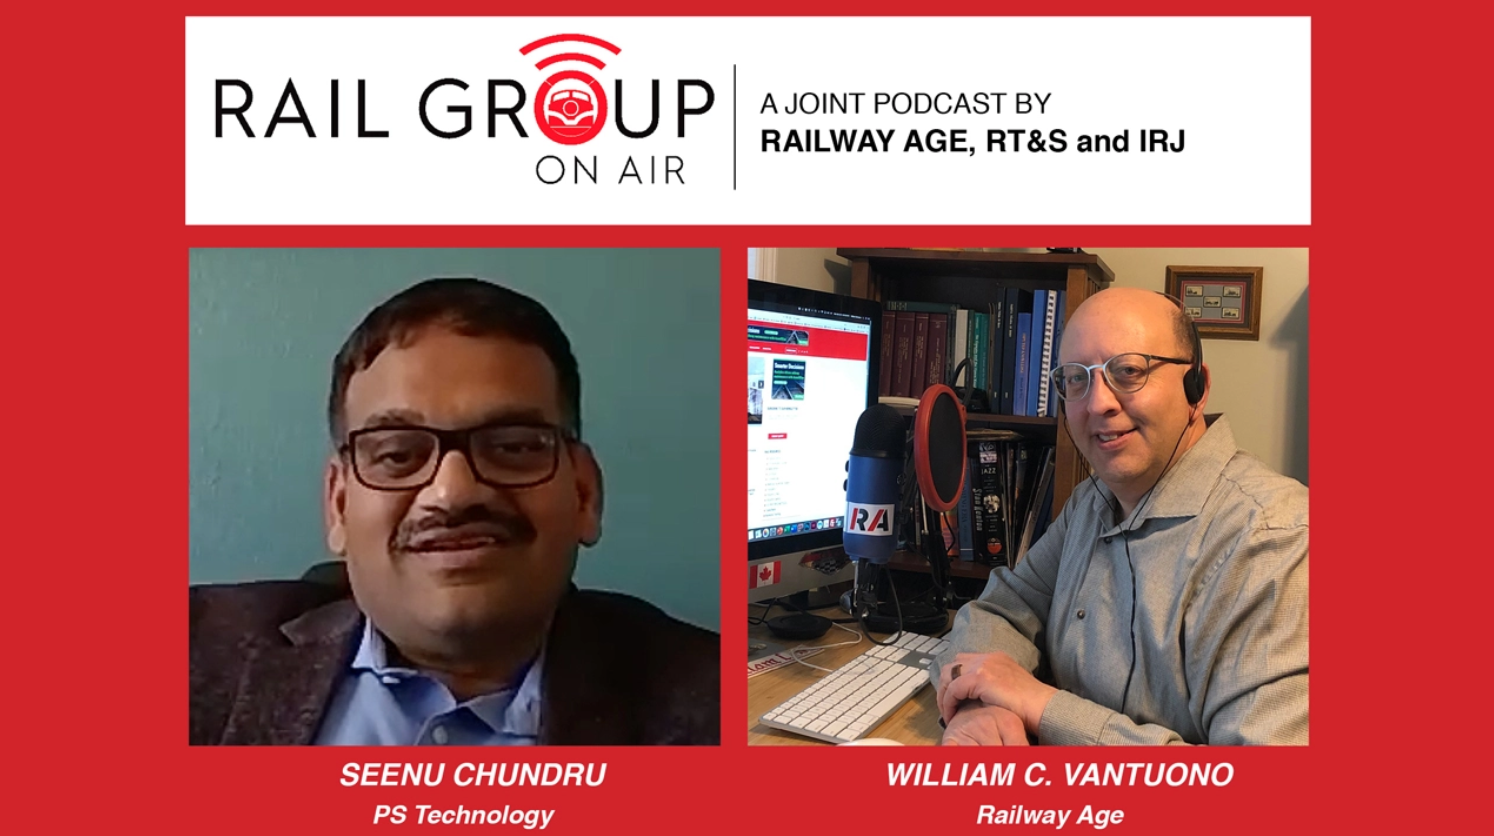 Railway Age Podcast with Seenu Chundru about Precision Train Builder